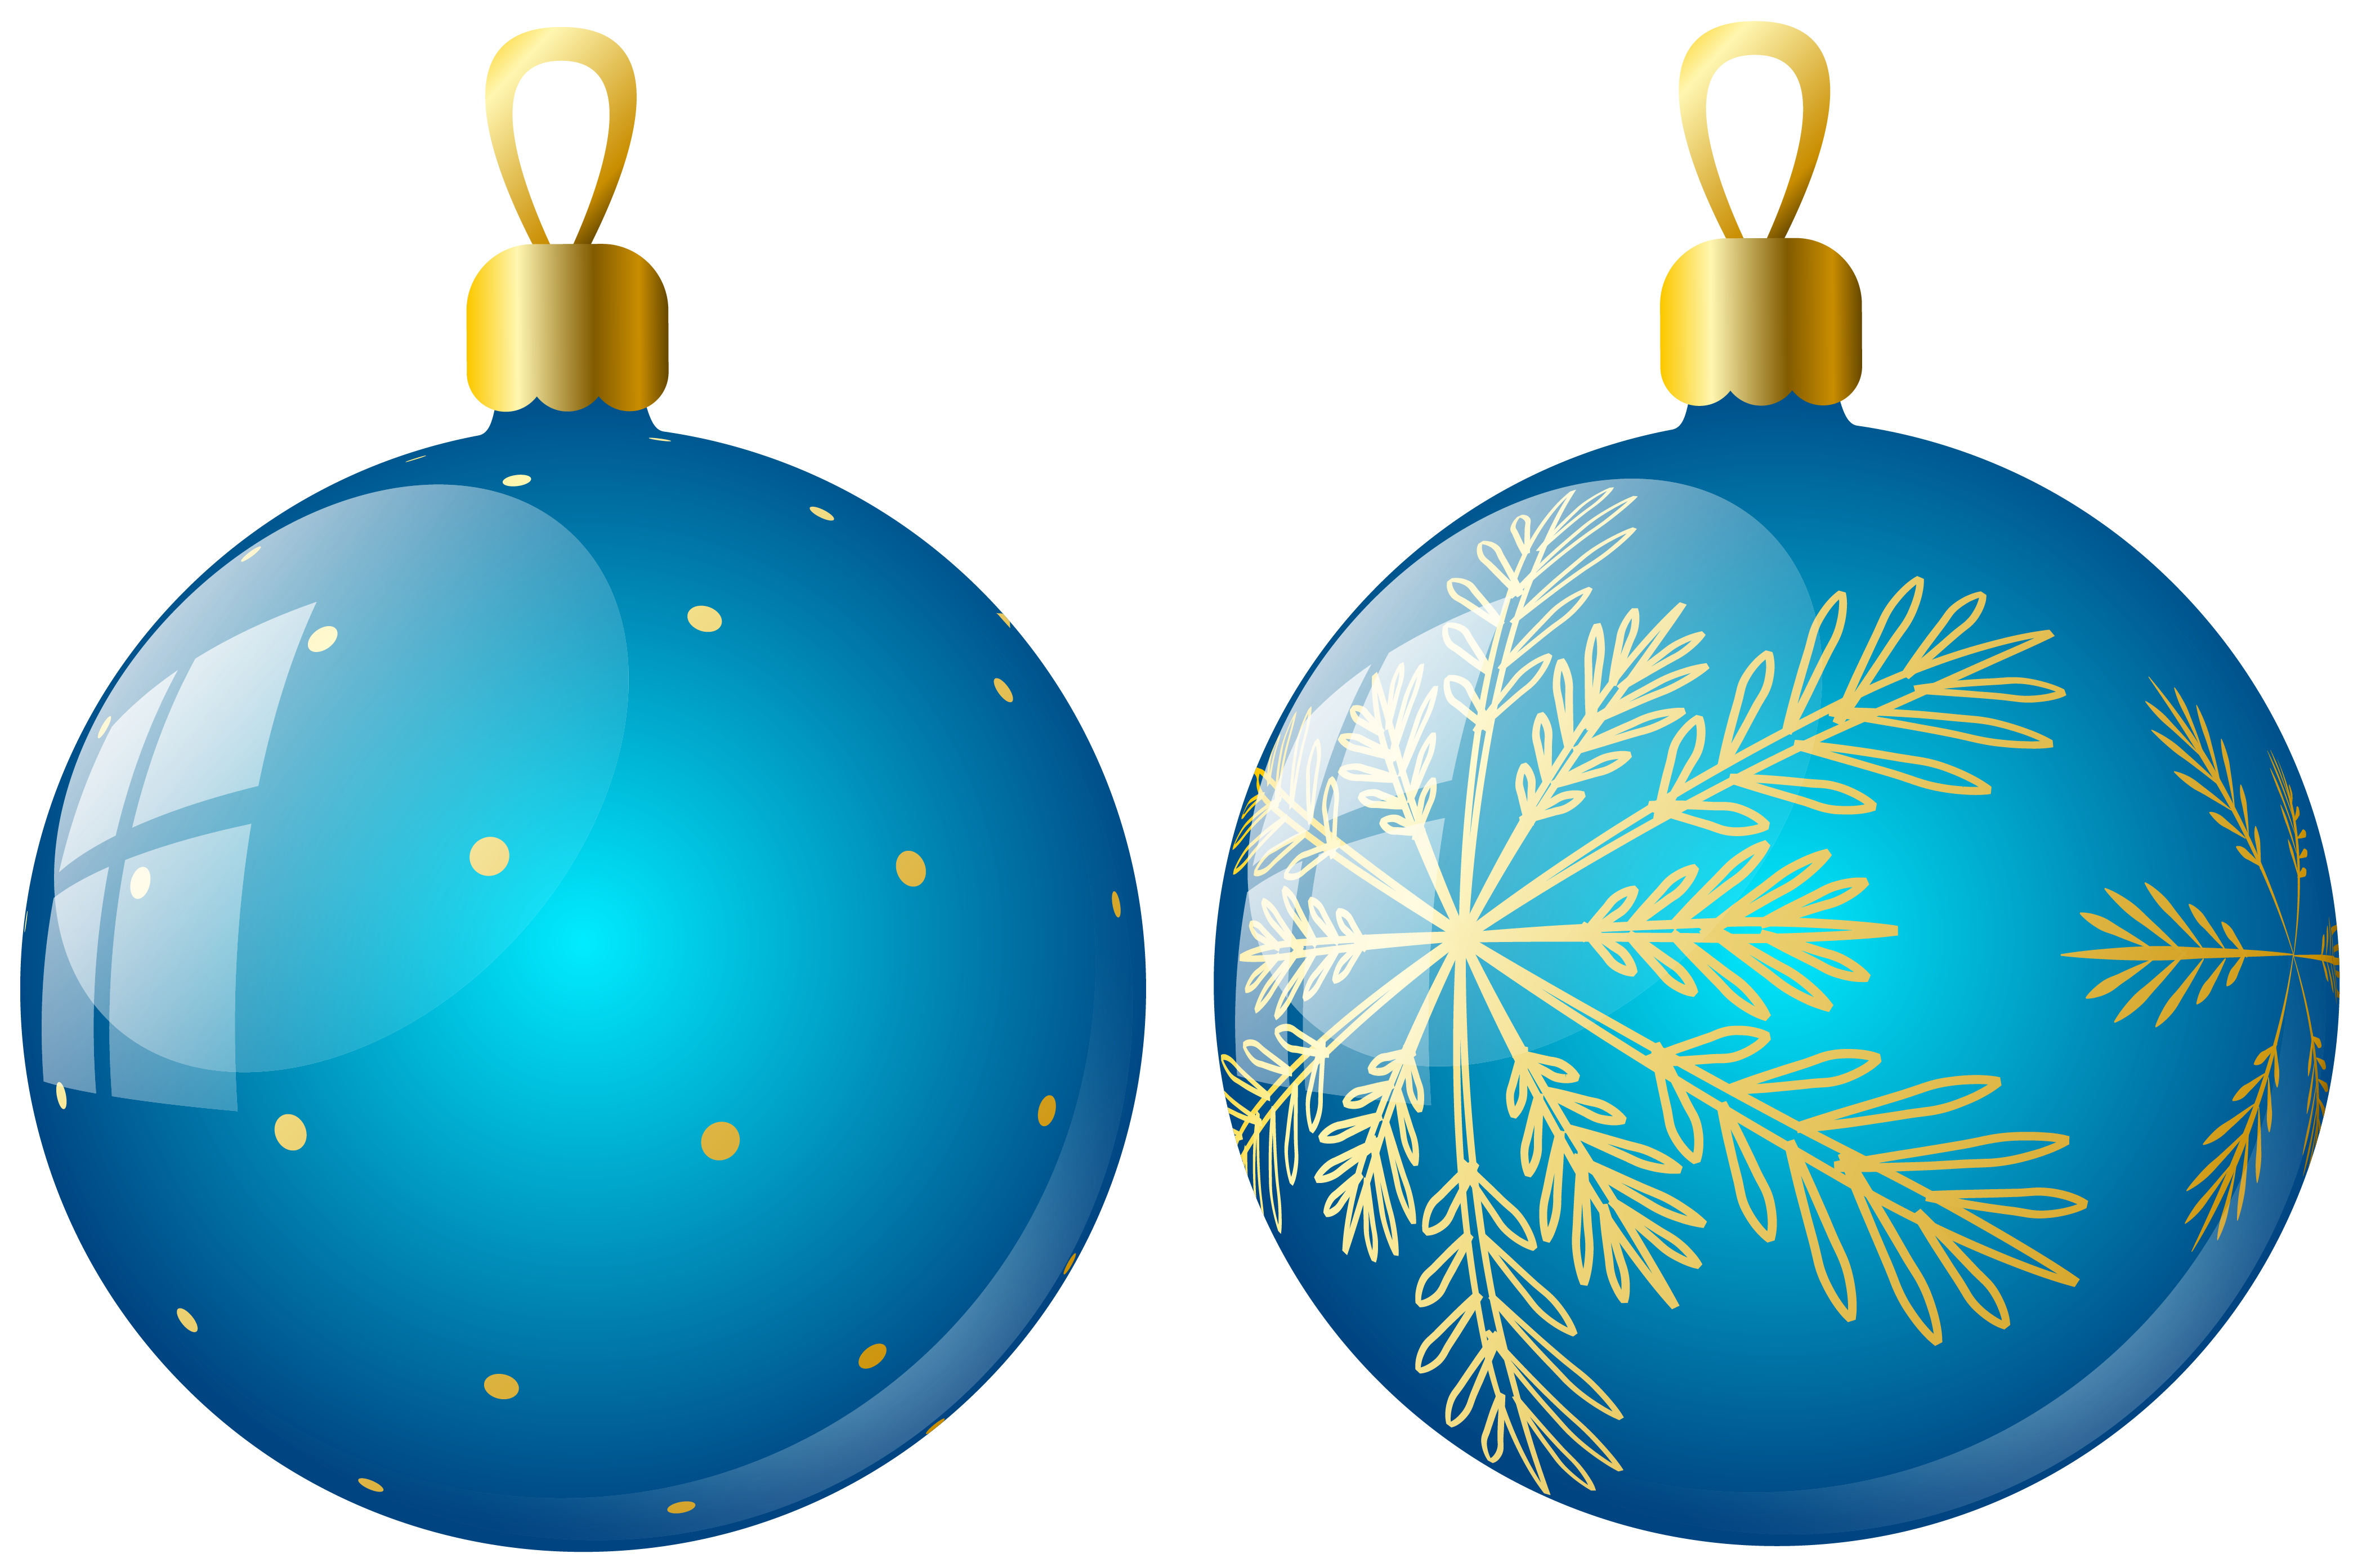 Transparent Two Blue Christmas Balls Ornaments Clipart | Gallery ...